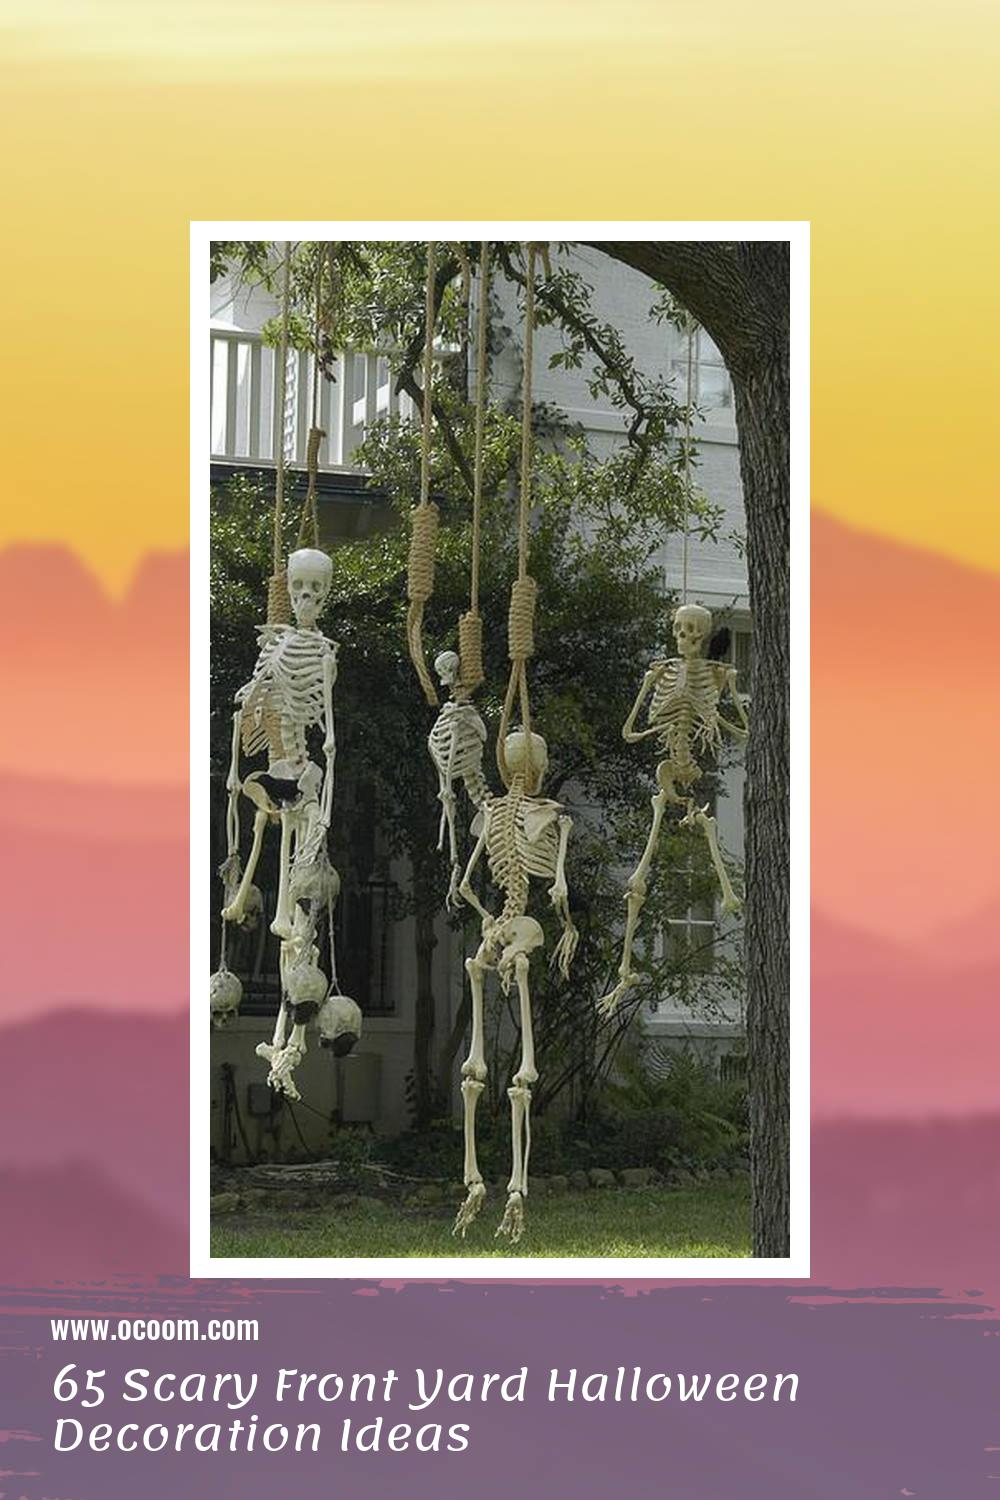 65 Scary Front Yard Halloween Decoration Ideas 15